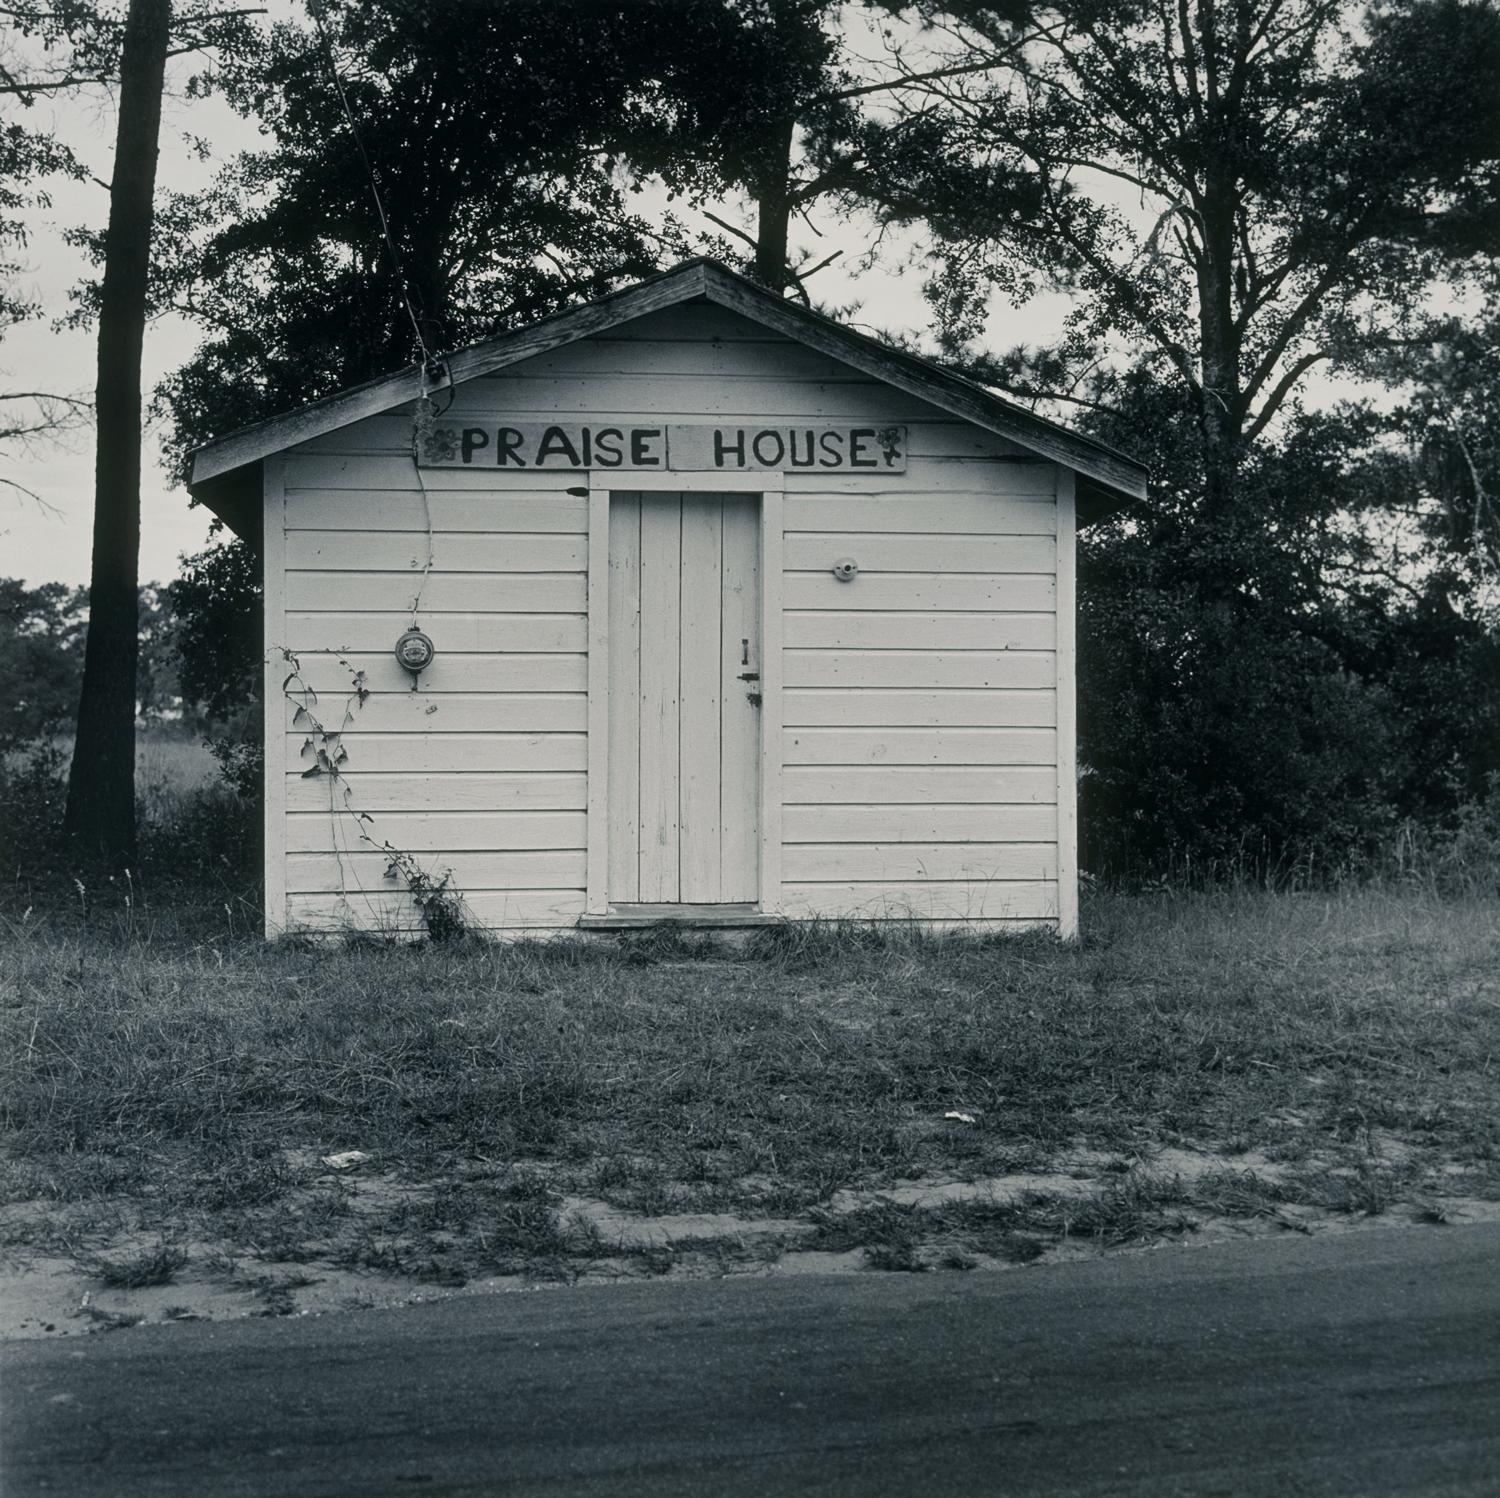 Carrie Mae Weems, Praise House, from the Sea Island Series, 1992. Silver gelatin print. Art Acquisition Fund 1997-5-2.1 © Carrie Mae Weems